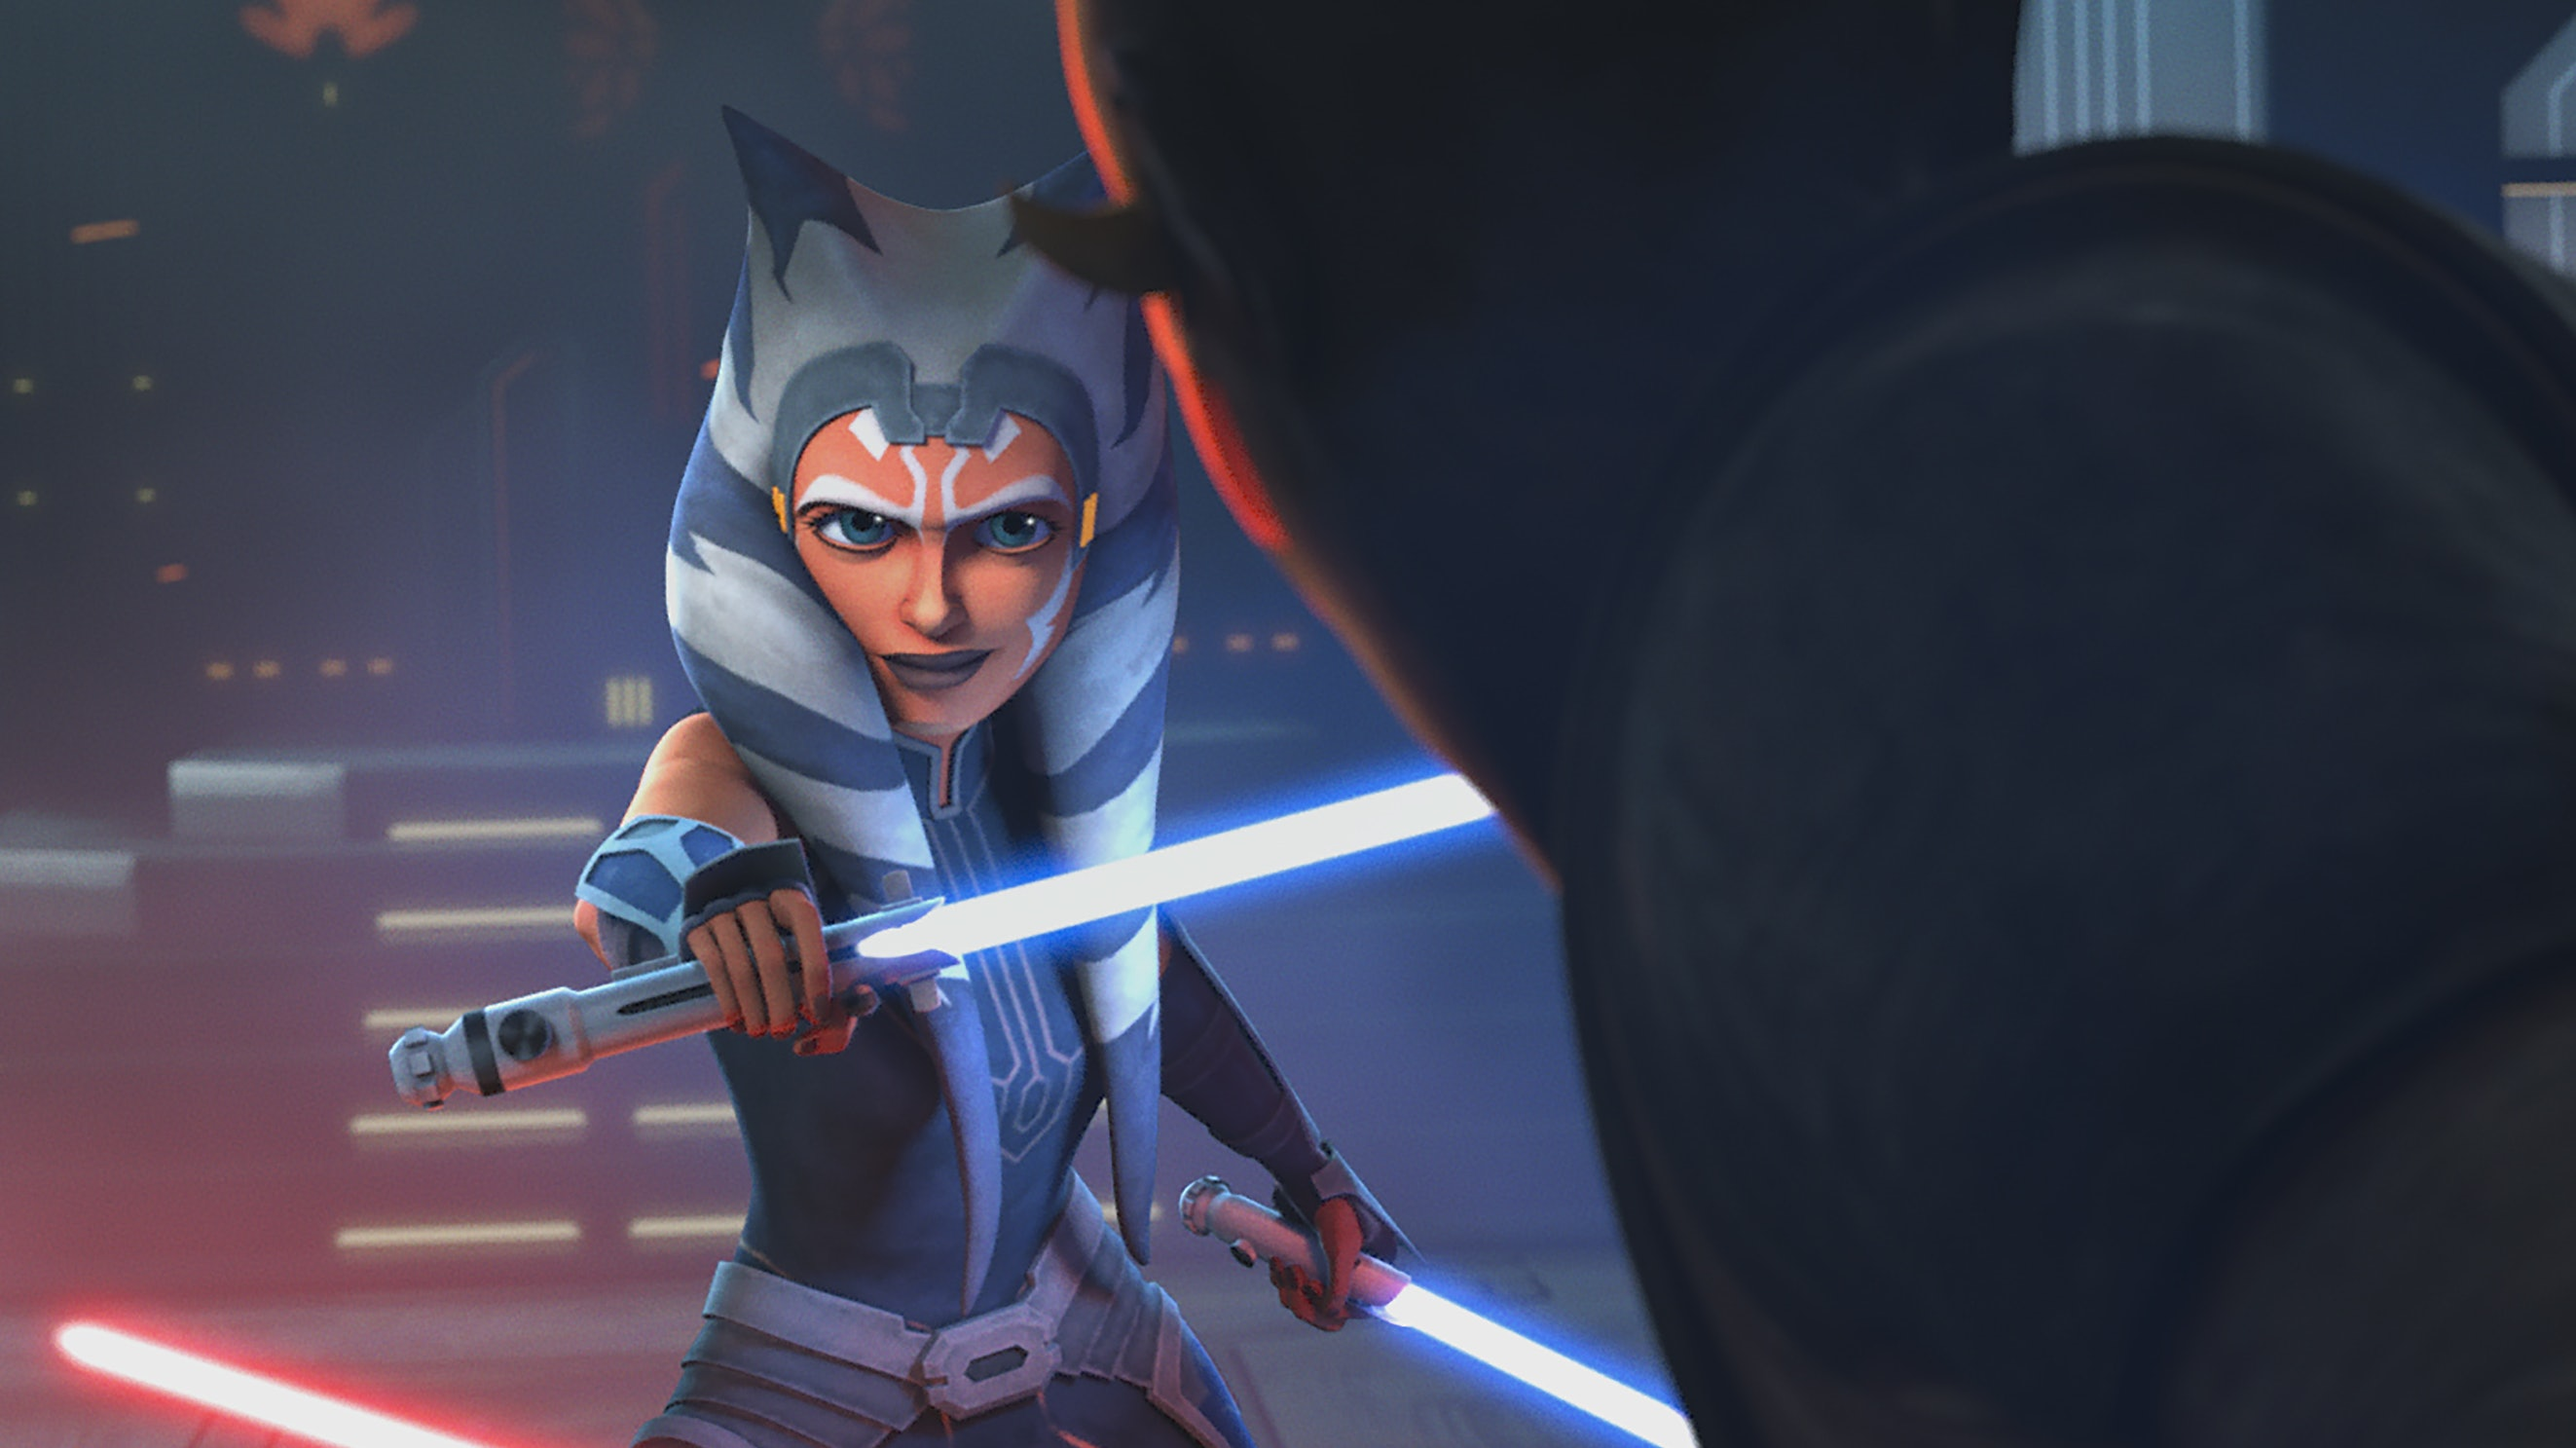 Star Wars 5 New Animated Series That Could Follow The Clone Wars Finale